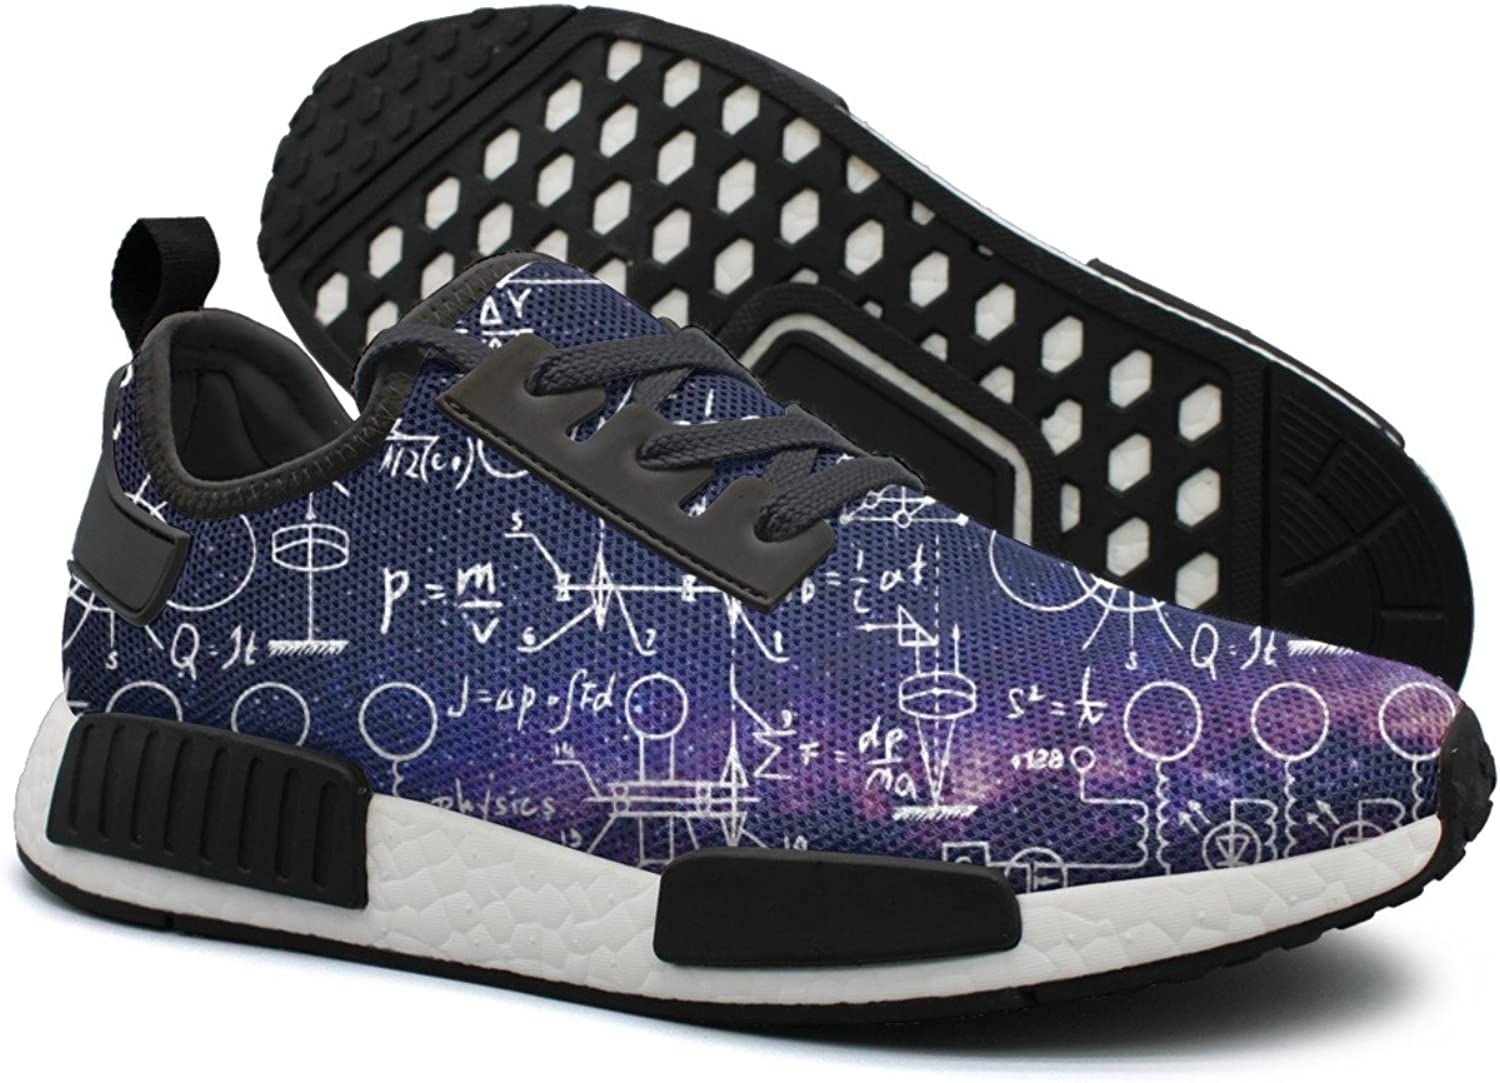 Physical Formulas Math Equations Women's Casual Lightweight Basketball Sneakers Gym Outdoor Gym shoes